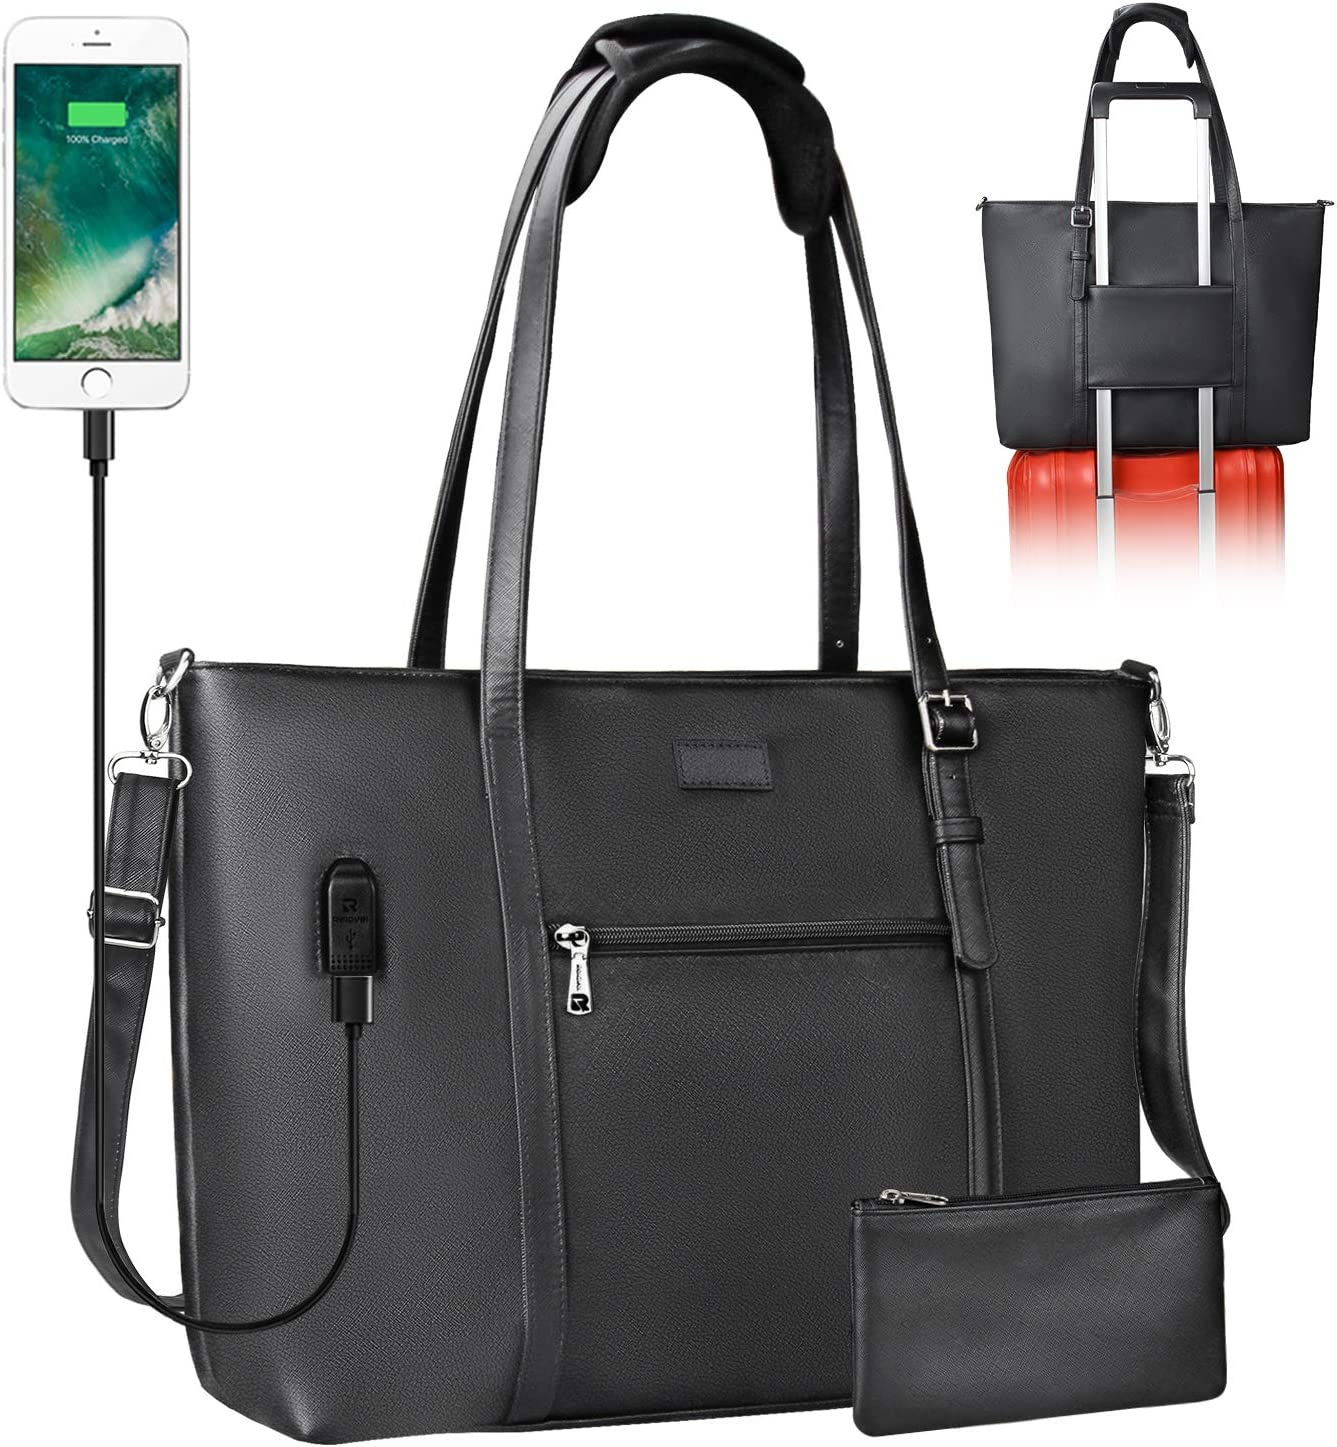 USB Laptop Tote Bag, Chomeiu Woman 15.6 inch Laptop Organizer Bag Teacher Work Purse Attach to Trolley (Black Leather)